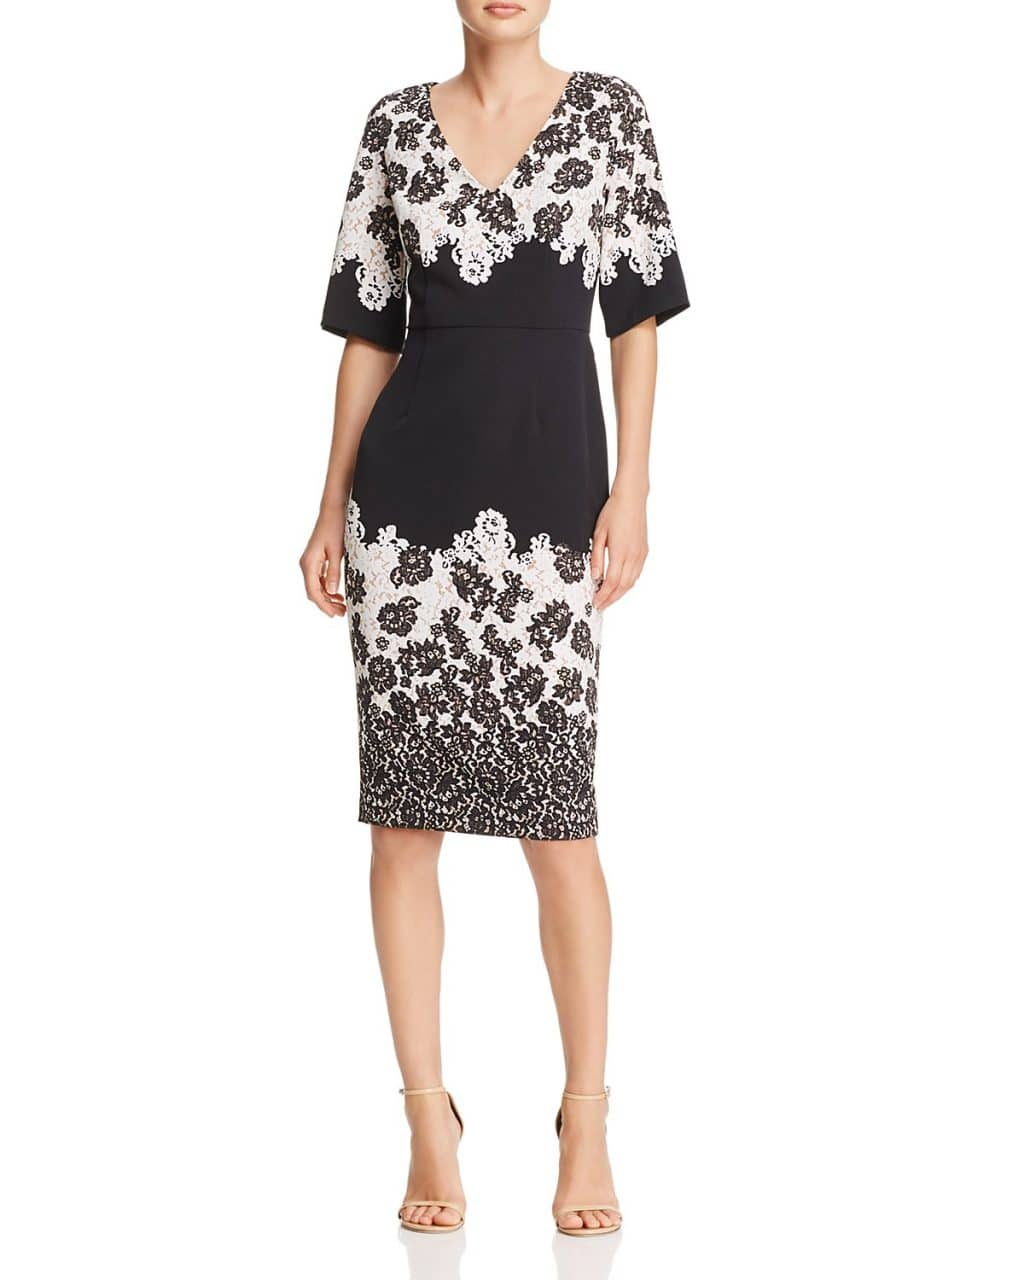 90a5db1fe00b ADRIANNA PAPELL Lace Print Sheath Black / Multi Dress - We Select ...